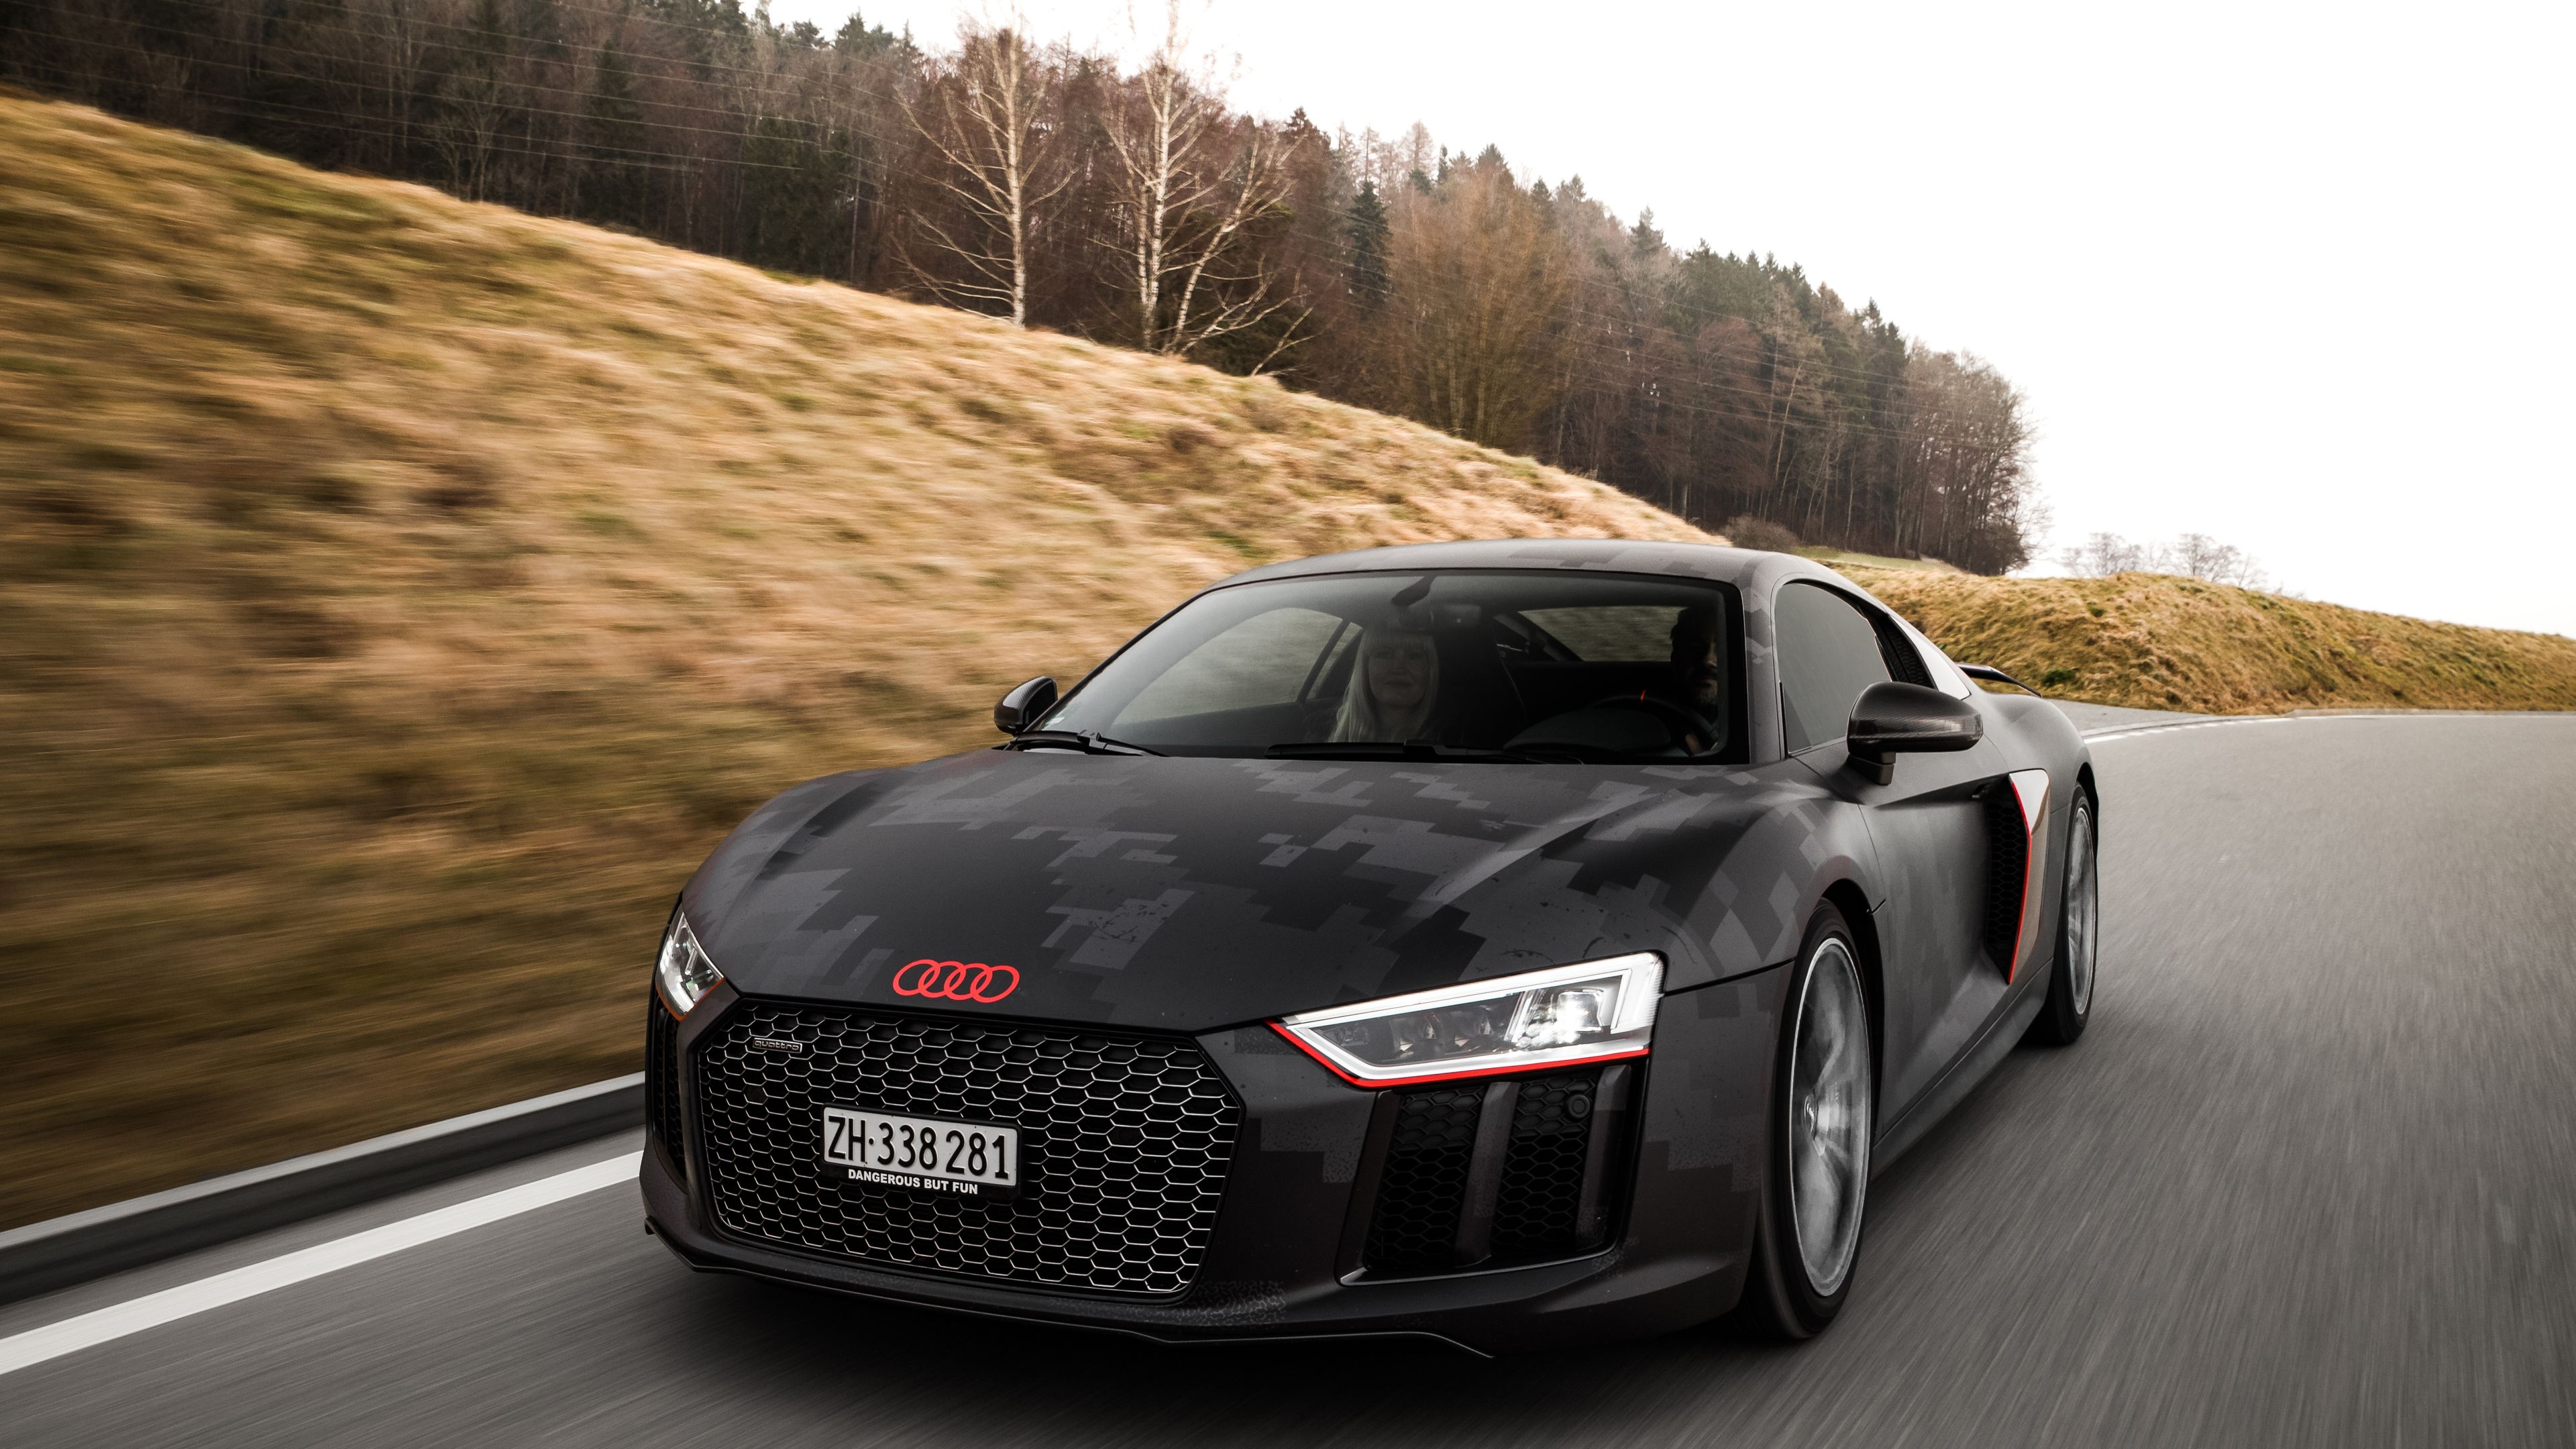 Wallpaper Audi Posted By Samantha Johnson